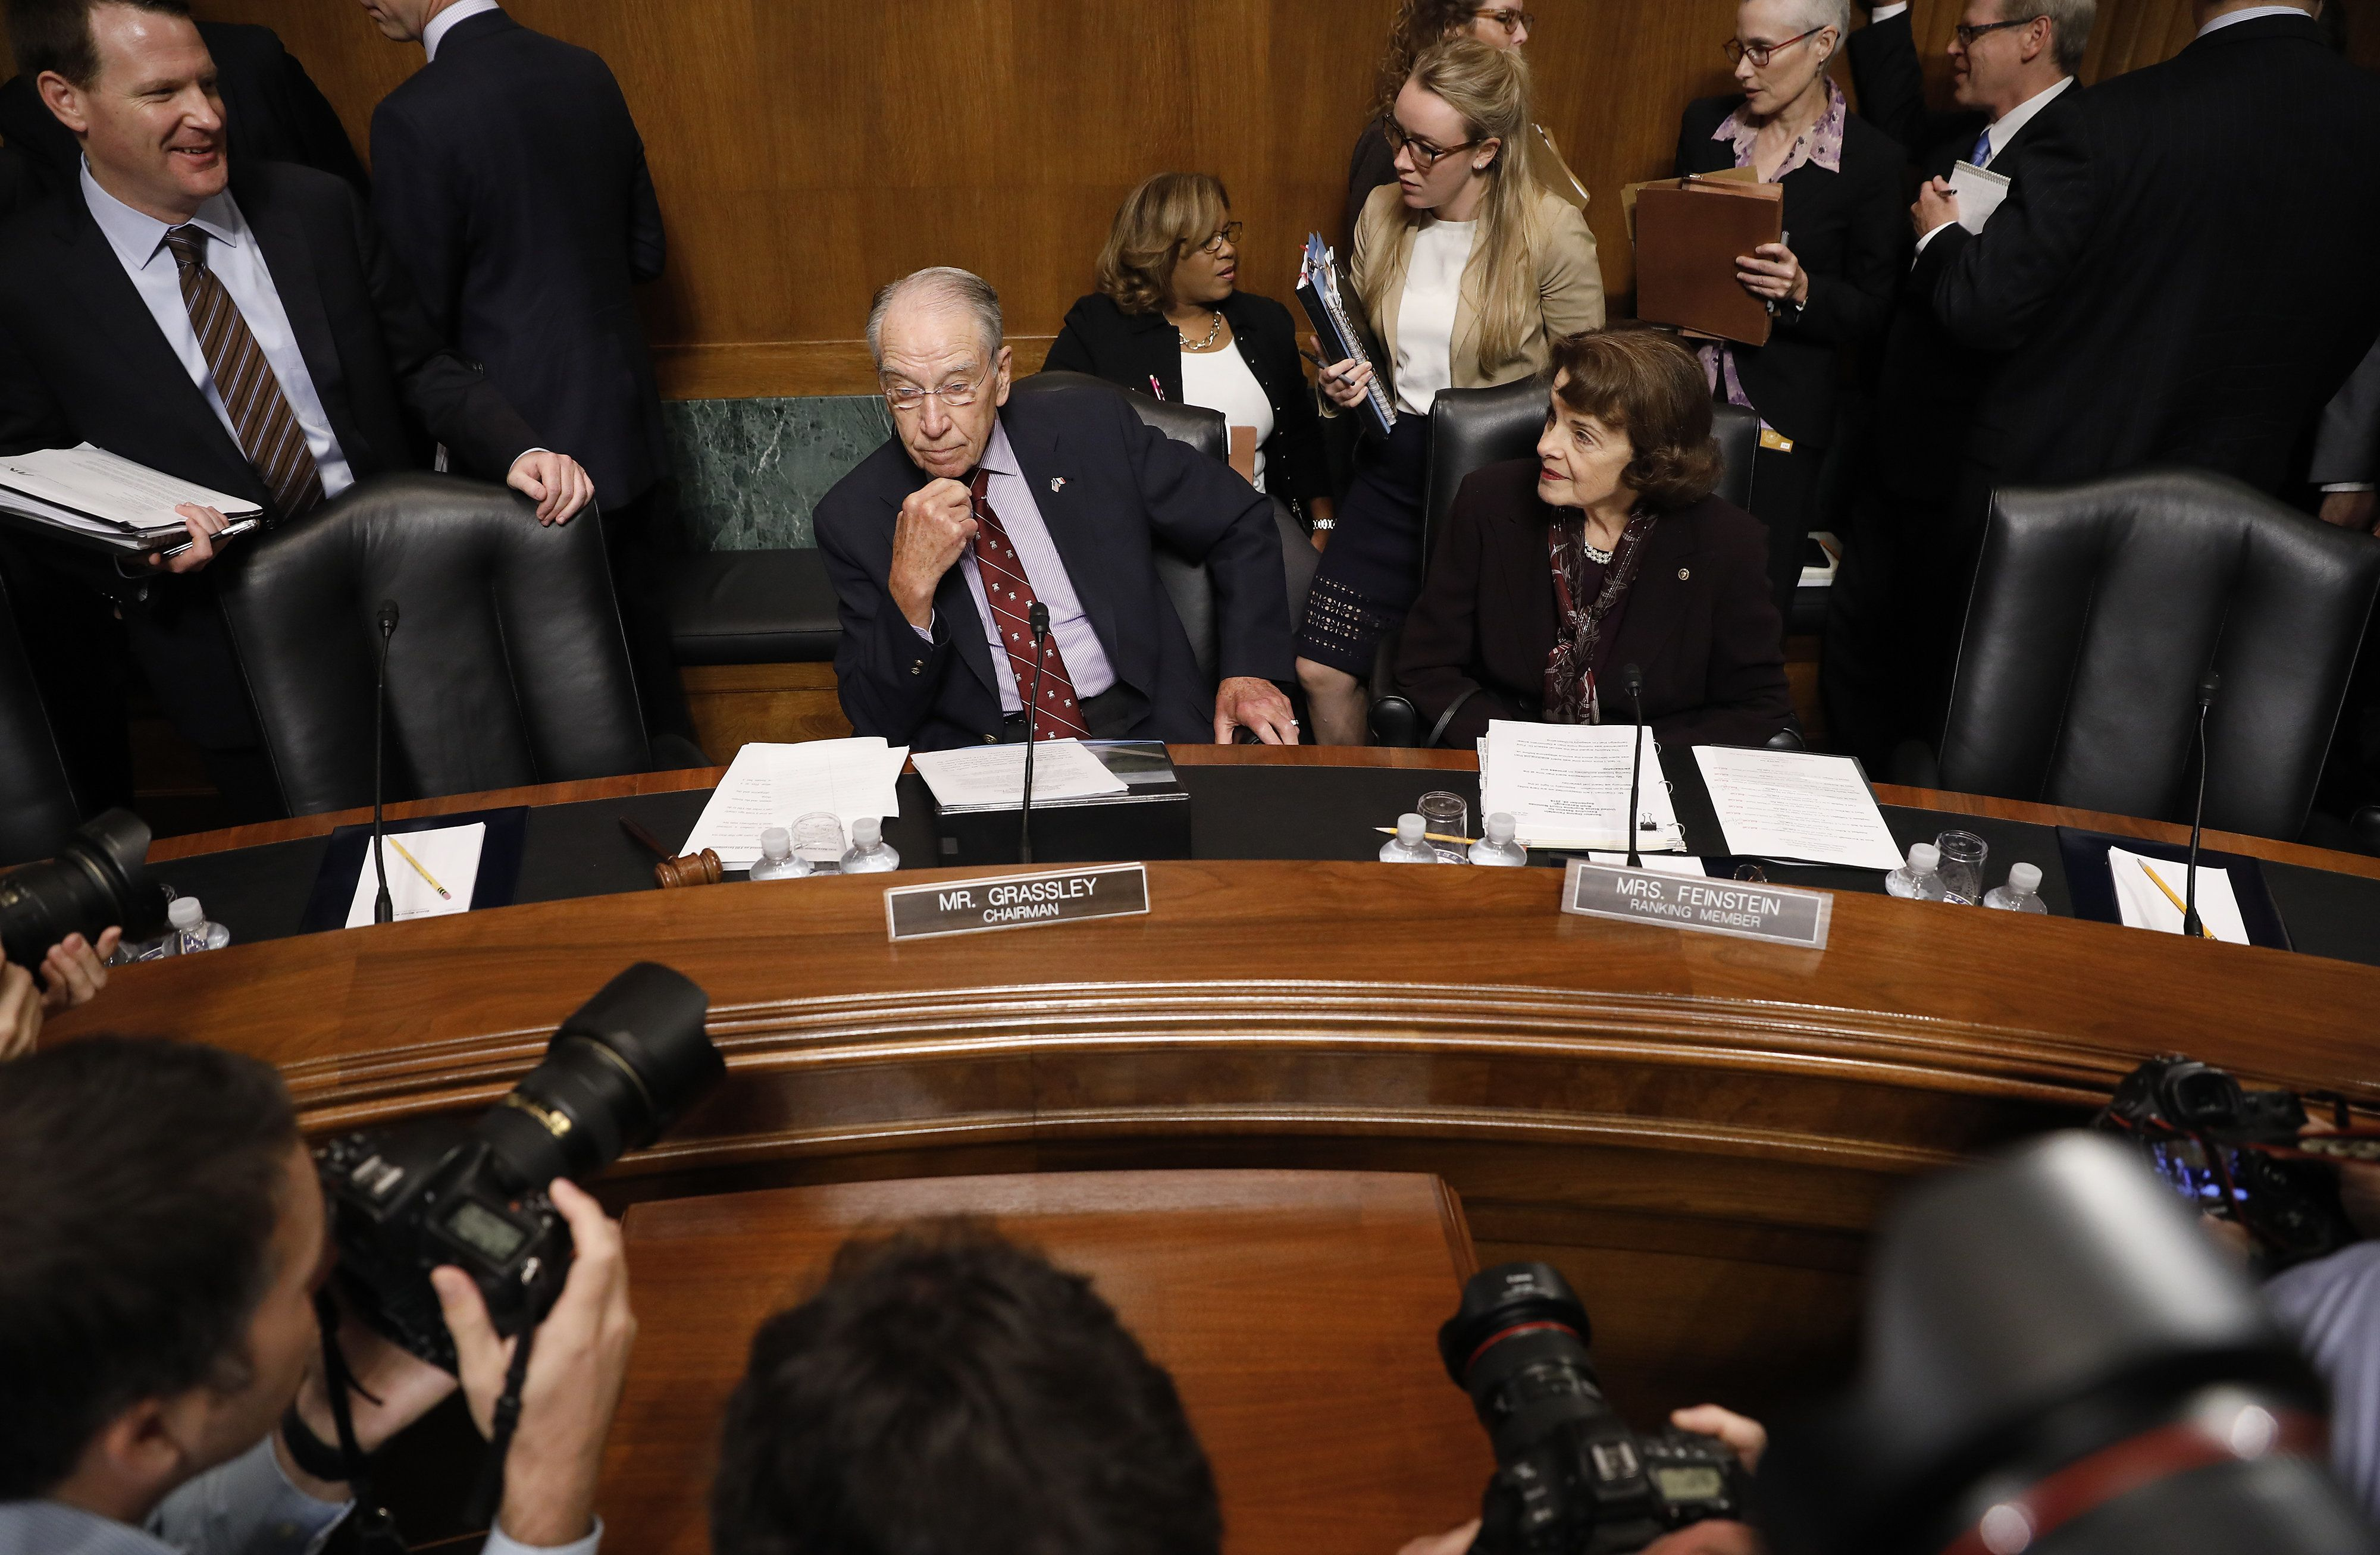 Senator Chuck Grassley, a Republican from Iowa and chairman of the Senate Judiciary Committee, center left, and Senator Dianne Feinstein, a Democrat from California and ranking member of the Senate Judiciary Committee, center right, arrive for a markup hearing in Washington, D.C., U.S., on Friday, Sept. 28, 2018. Supreme Court nomineeBrettKavanaughappears headed toward approval by the Senate Judiciary Committee after pivotal GOP SenatorJeff Flakesaid he'll vote to confirm the nominee. Photographer: Aaron P. Bernstein/Bloomberg via Getty Images